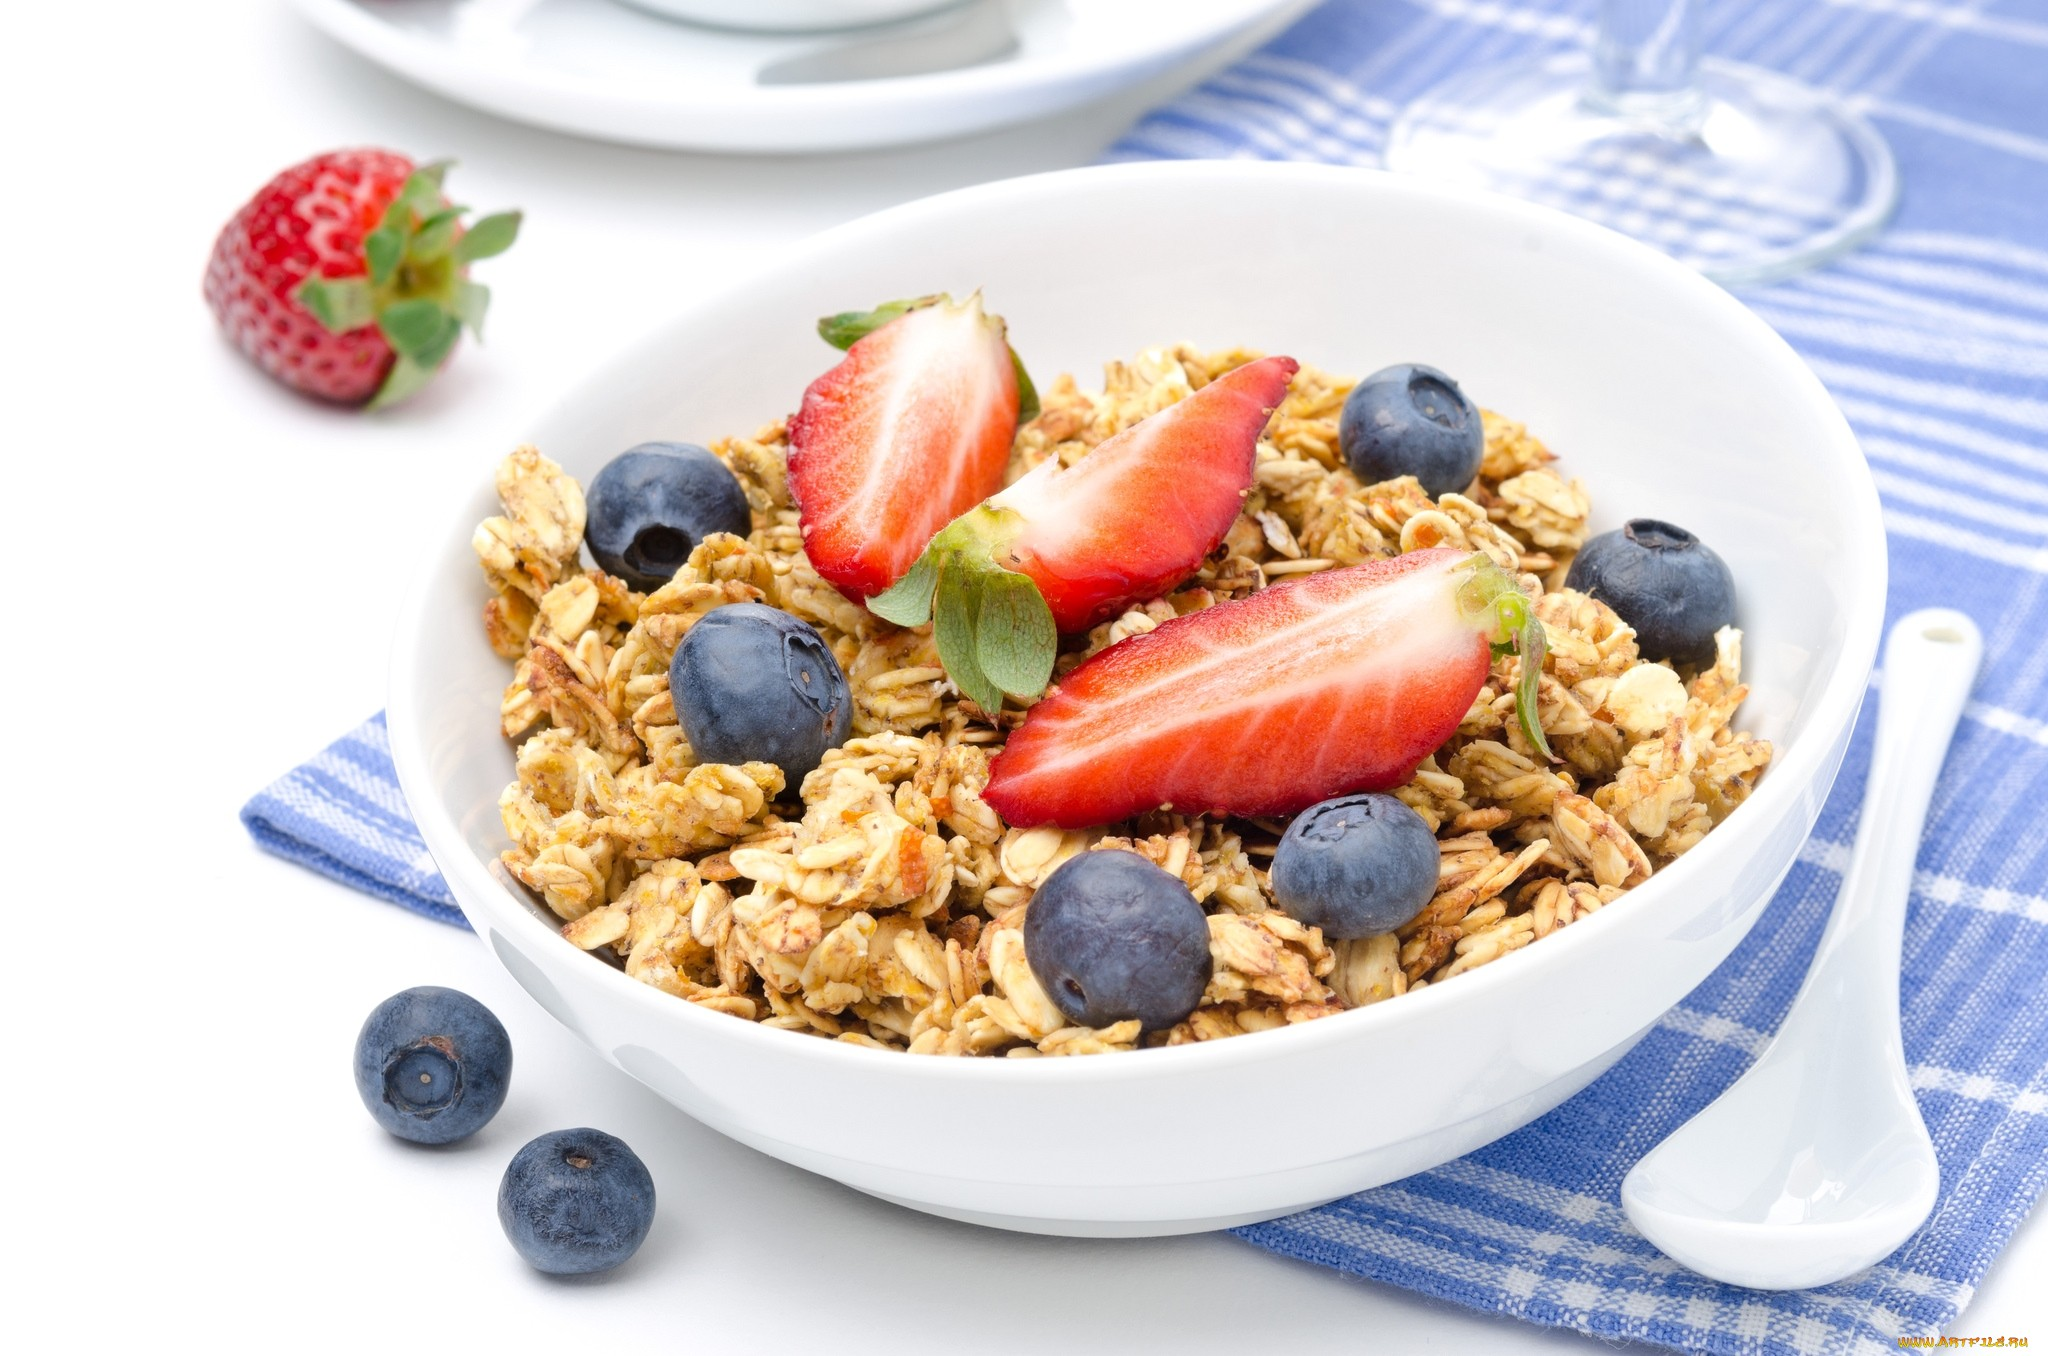 341 breakfast hd wallpapers background images wallpaper abyss